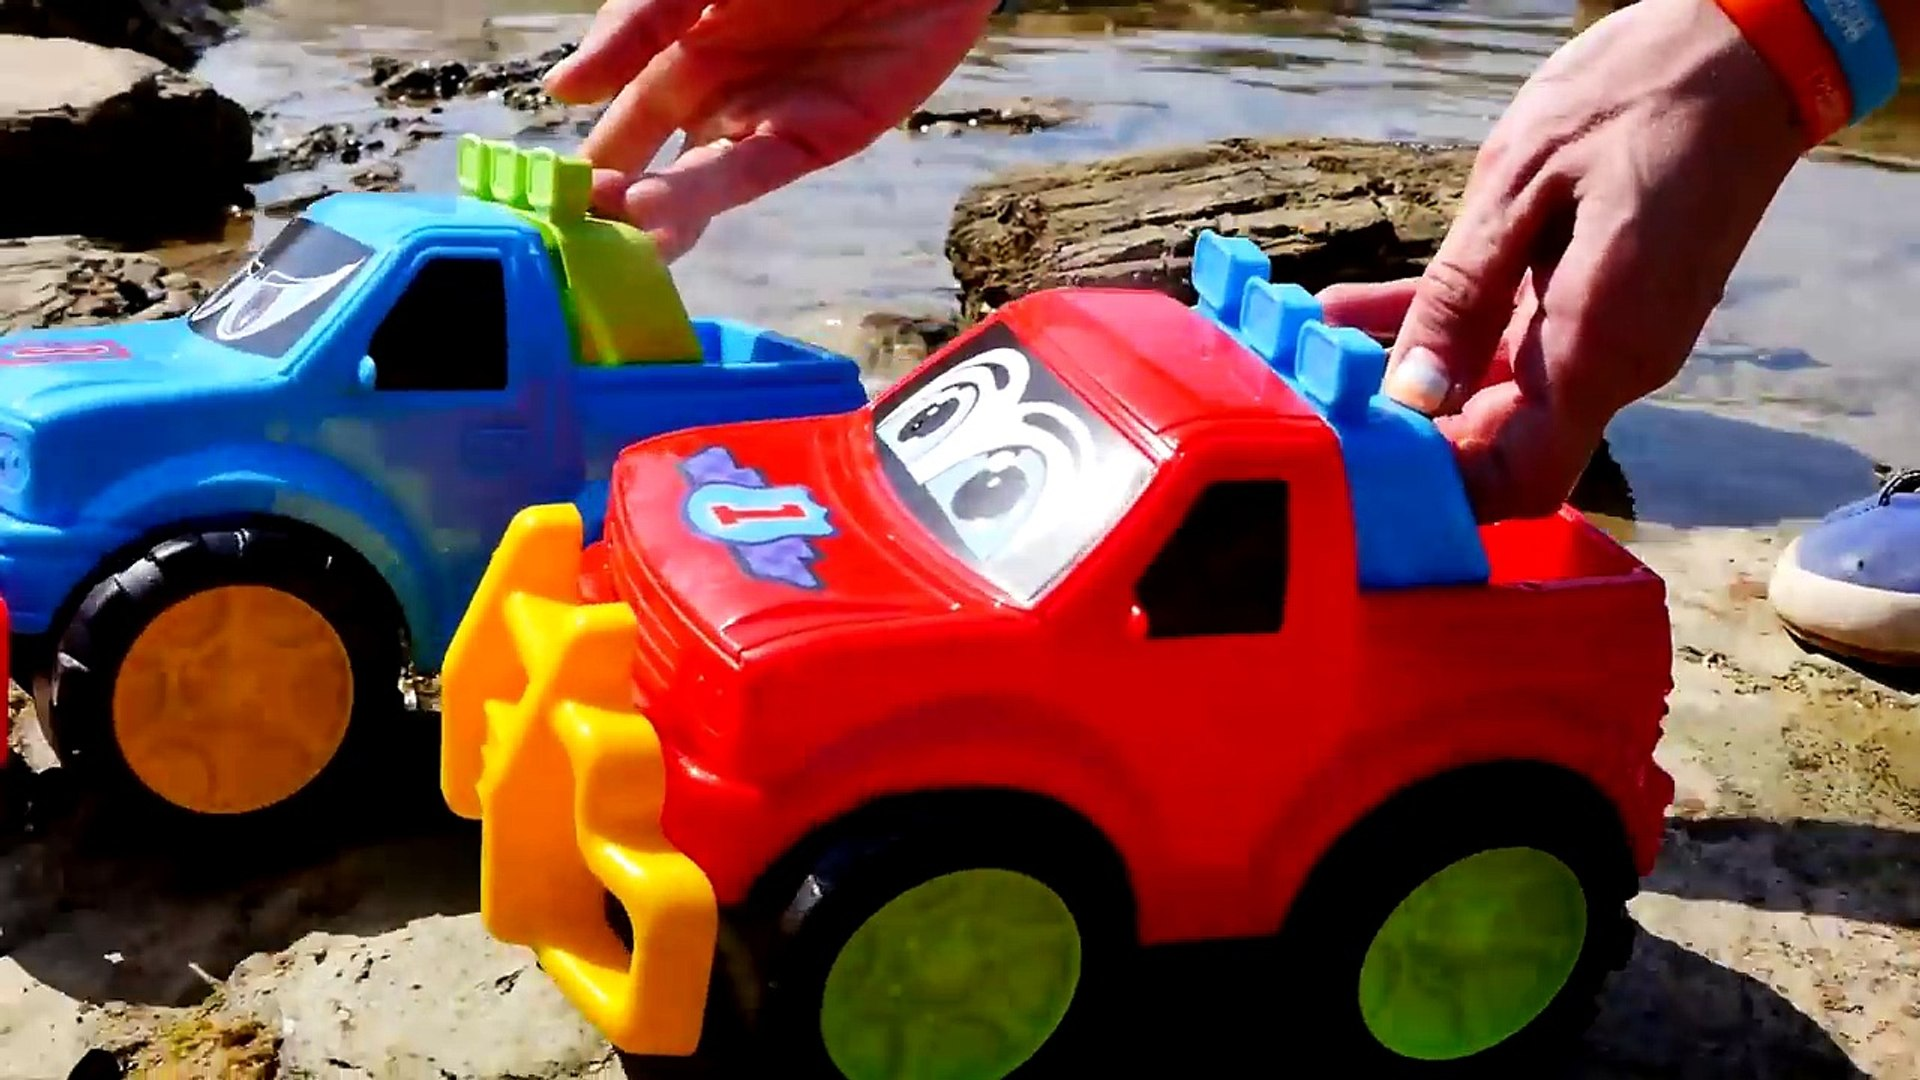 BEACH JEEPS! - Toy Trucks Seaside Stories for Children - Toy Cars Videos for Kids - Toy Tractors-HaR